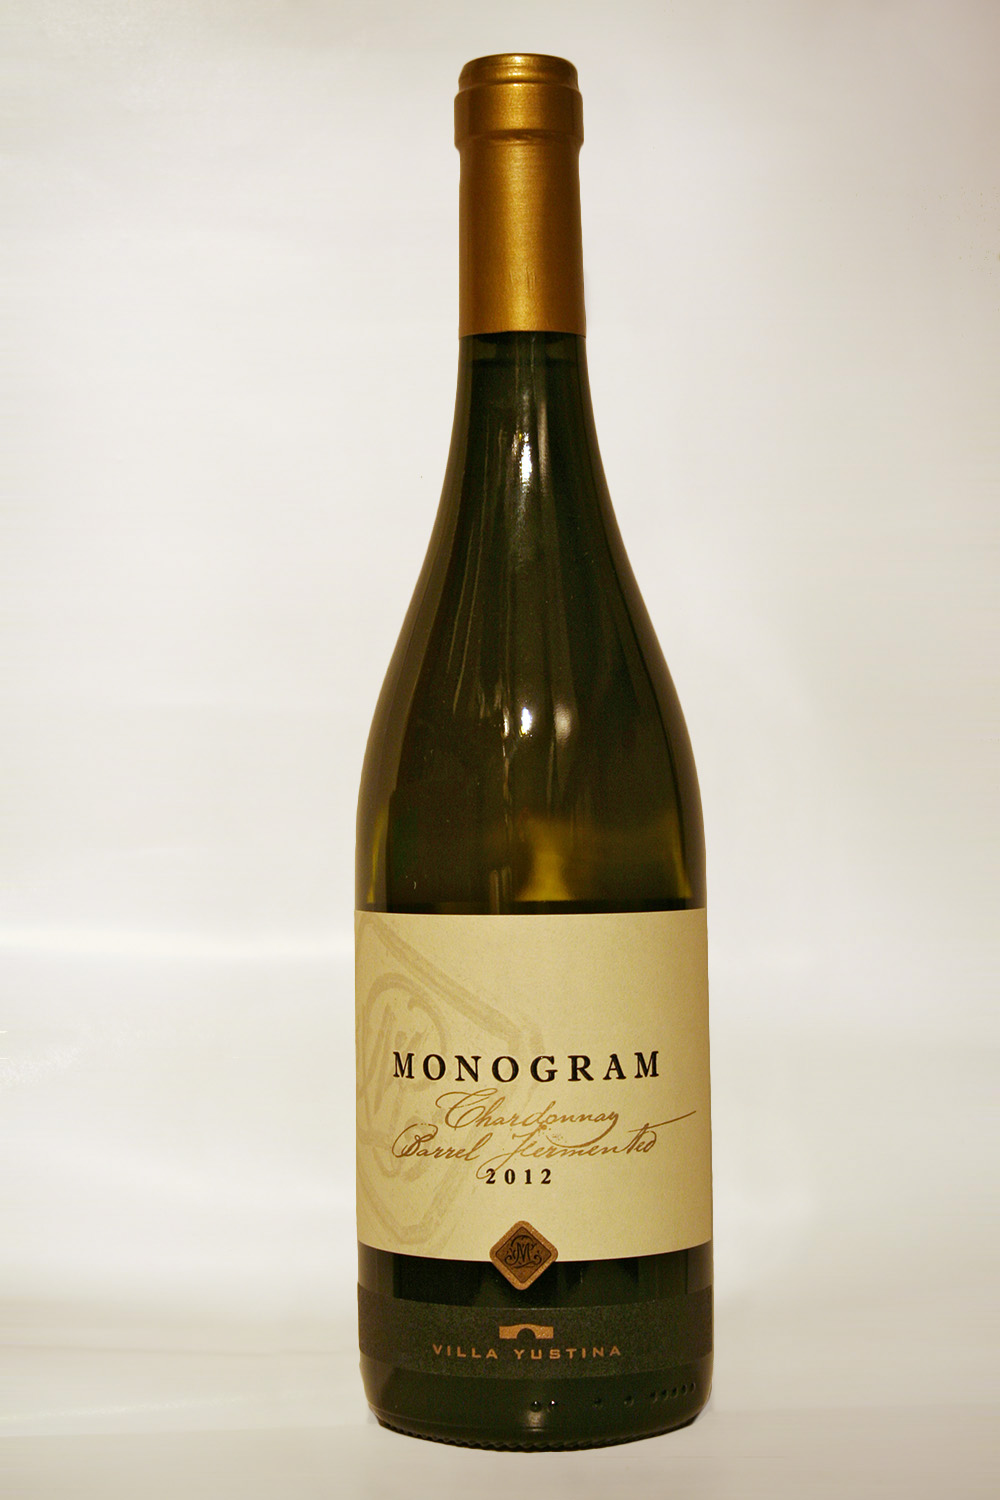 Monogram Chardonnay Barrel Fermented 2012